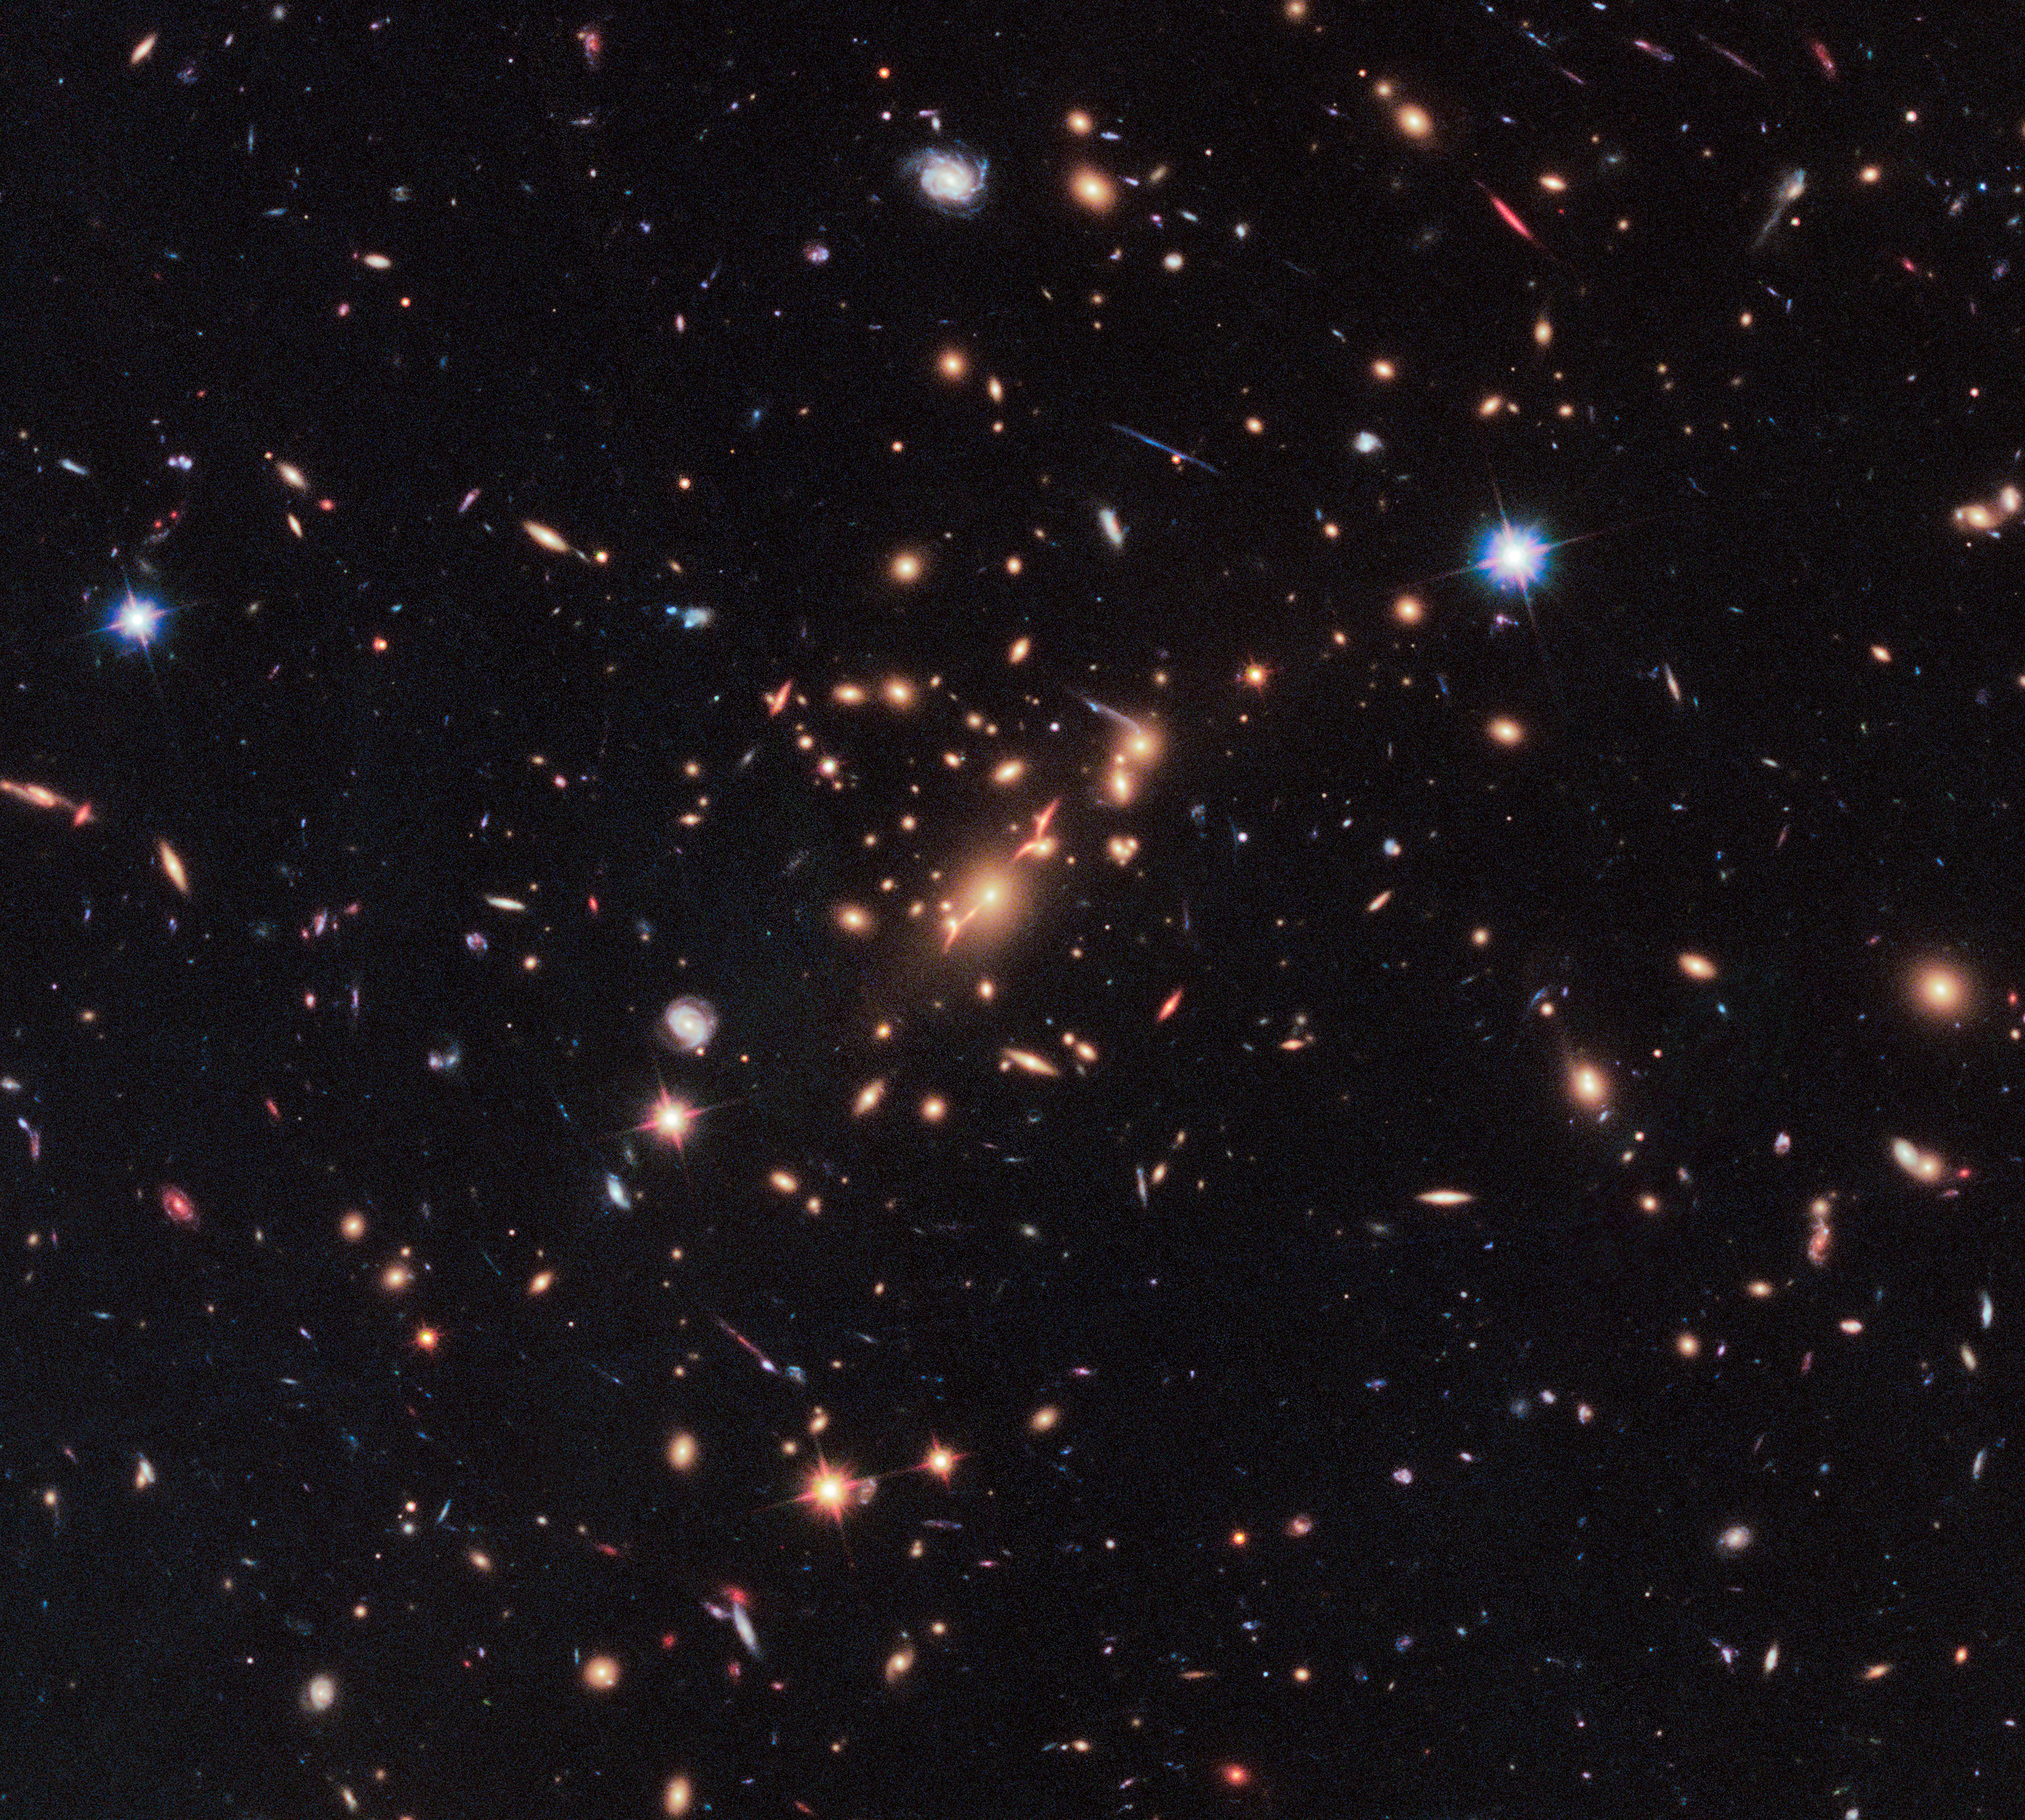 Hubble Uses Gravitational Lens to Capture Disk Galaxy